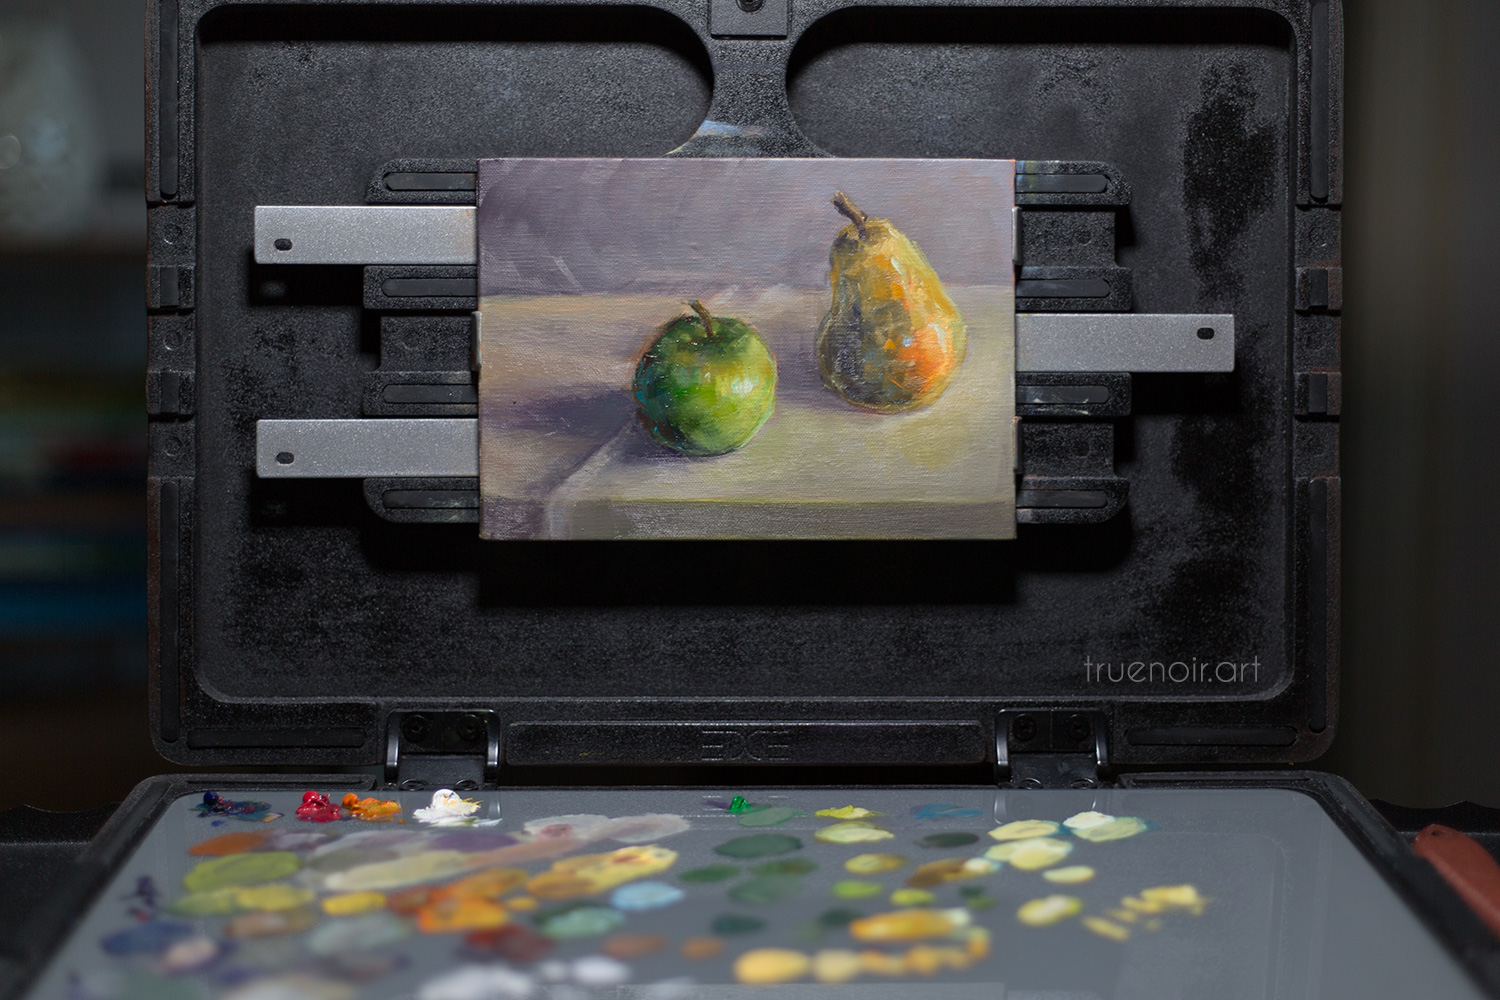 A still life painting of an apple and a pear on artist's easel.